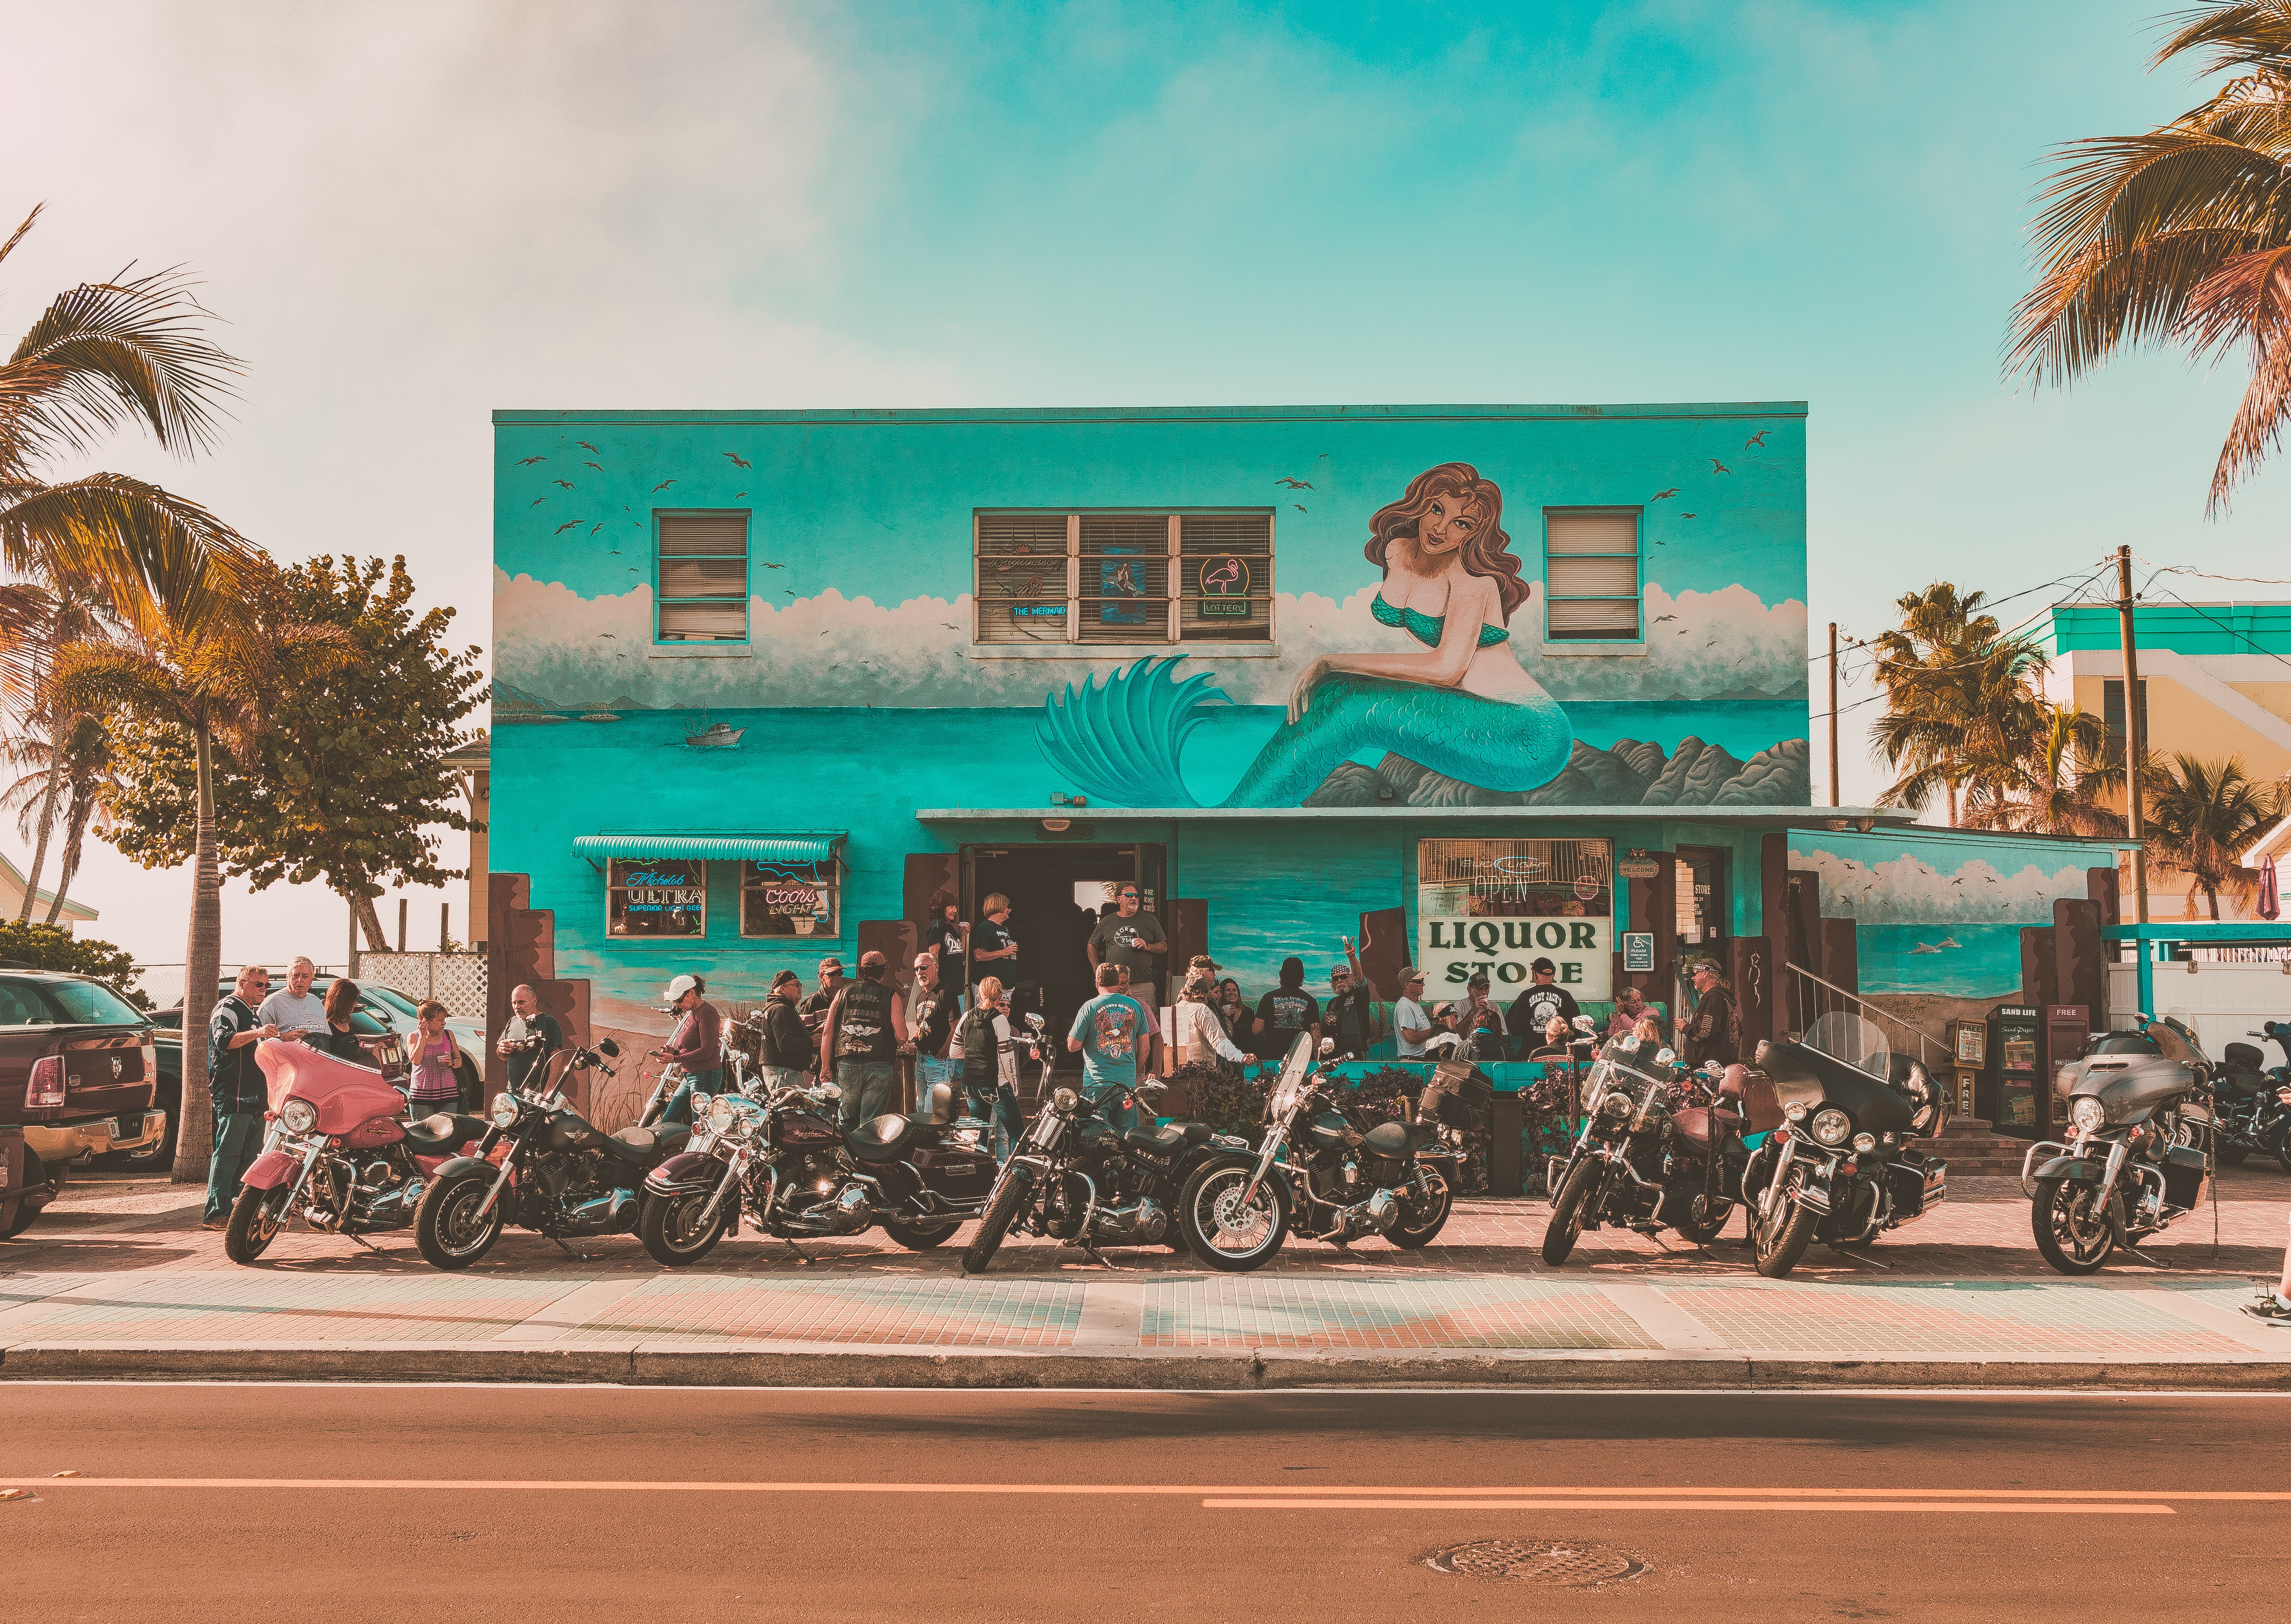 People and bikes in front of a liquor store with palm trees by its side